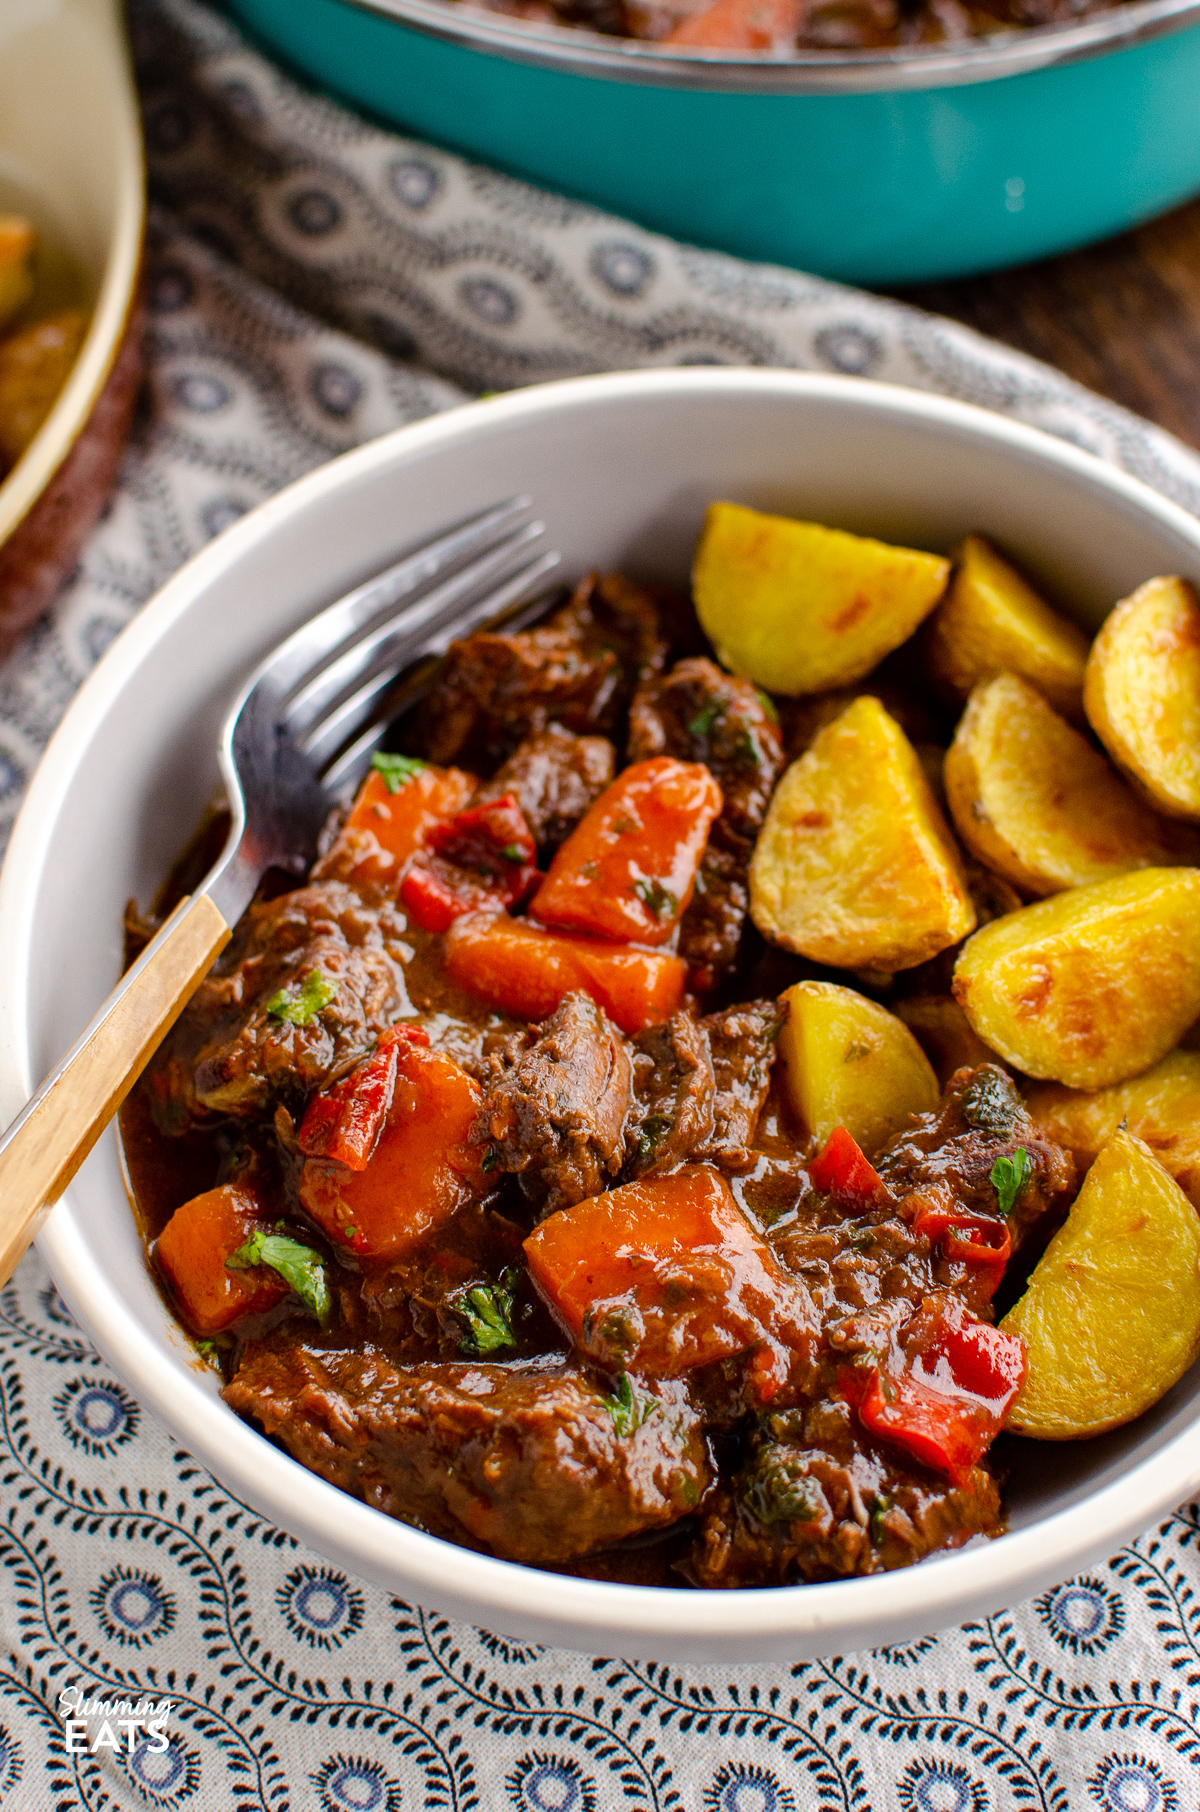 grey bowl of balsamic braised beef with roasted Yukon gold potatoes on a patterned placemat